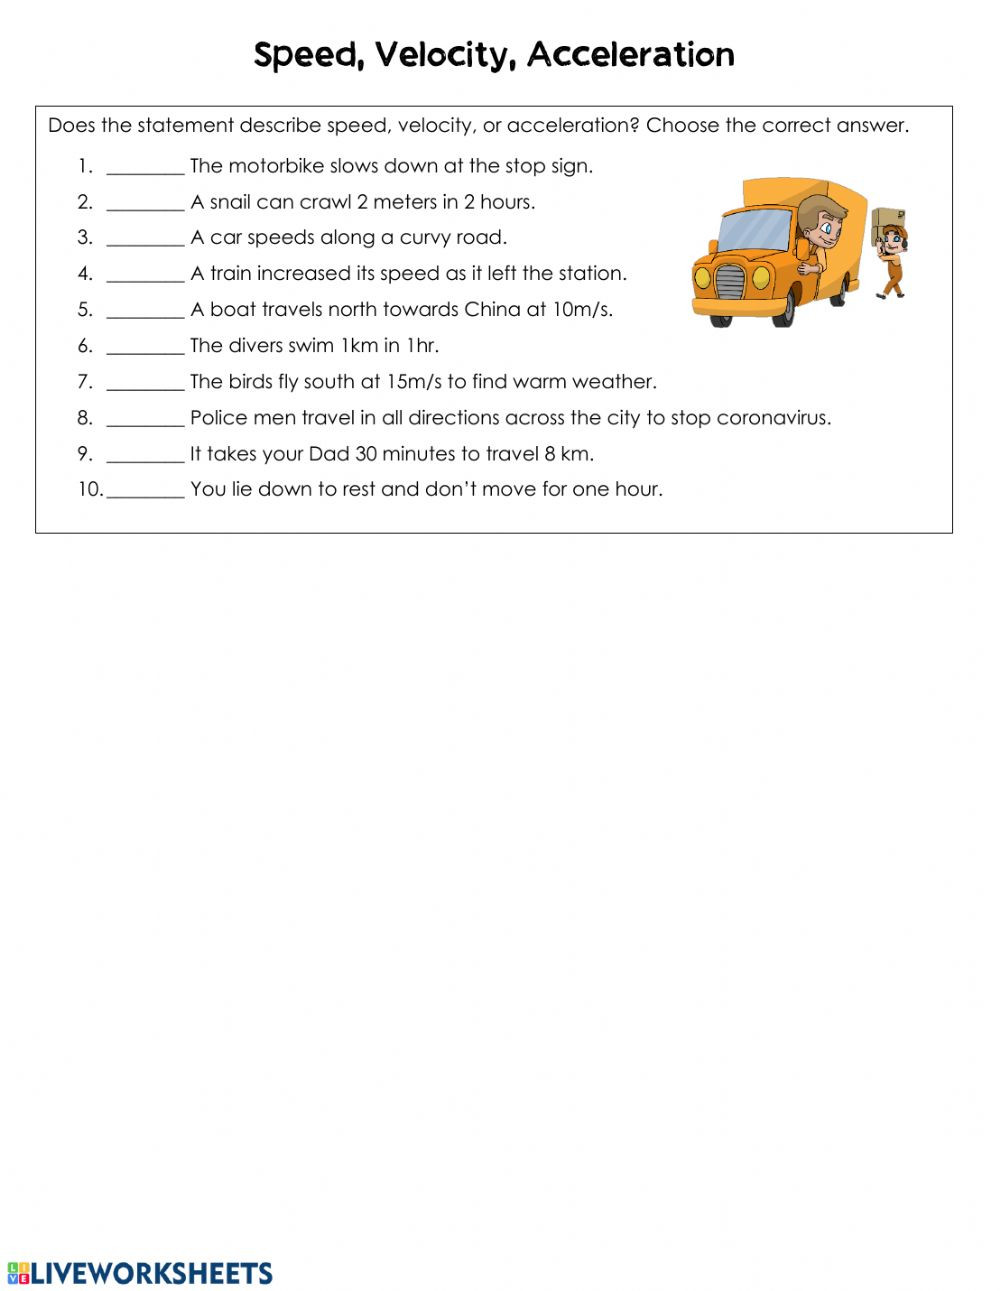 Acceleration Worksheet with Answers Speed Velocity and Acceleration Interactive Worksheet